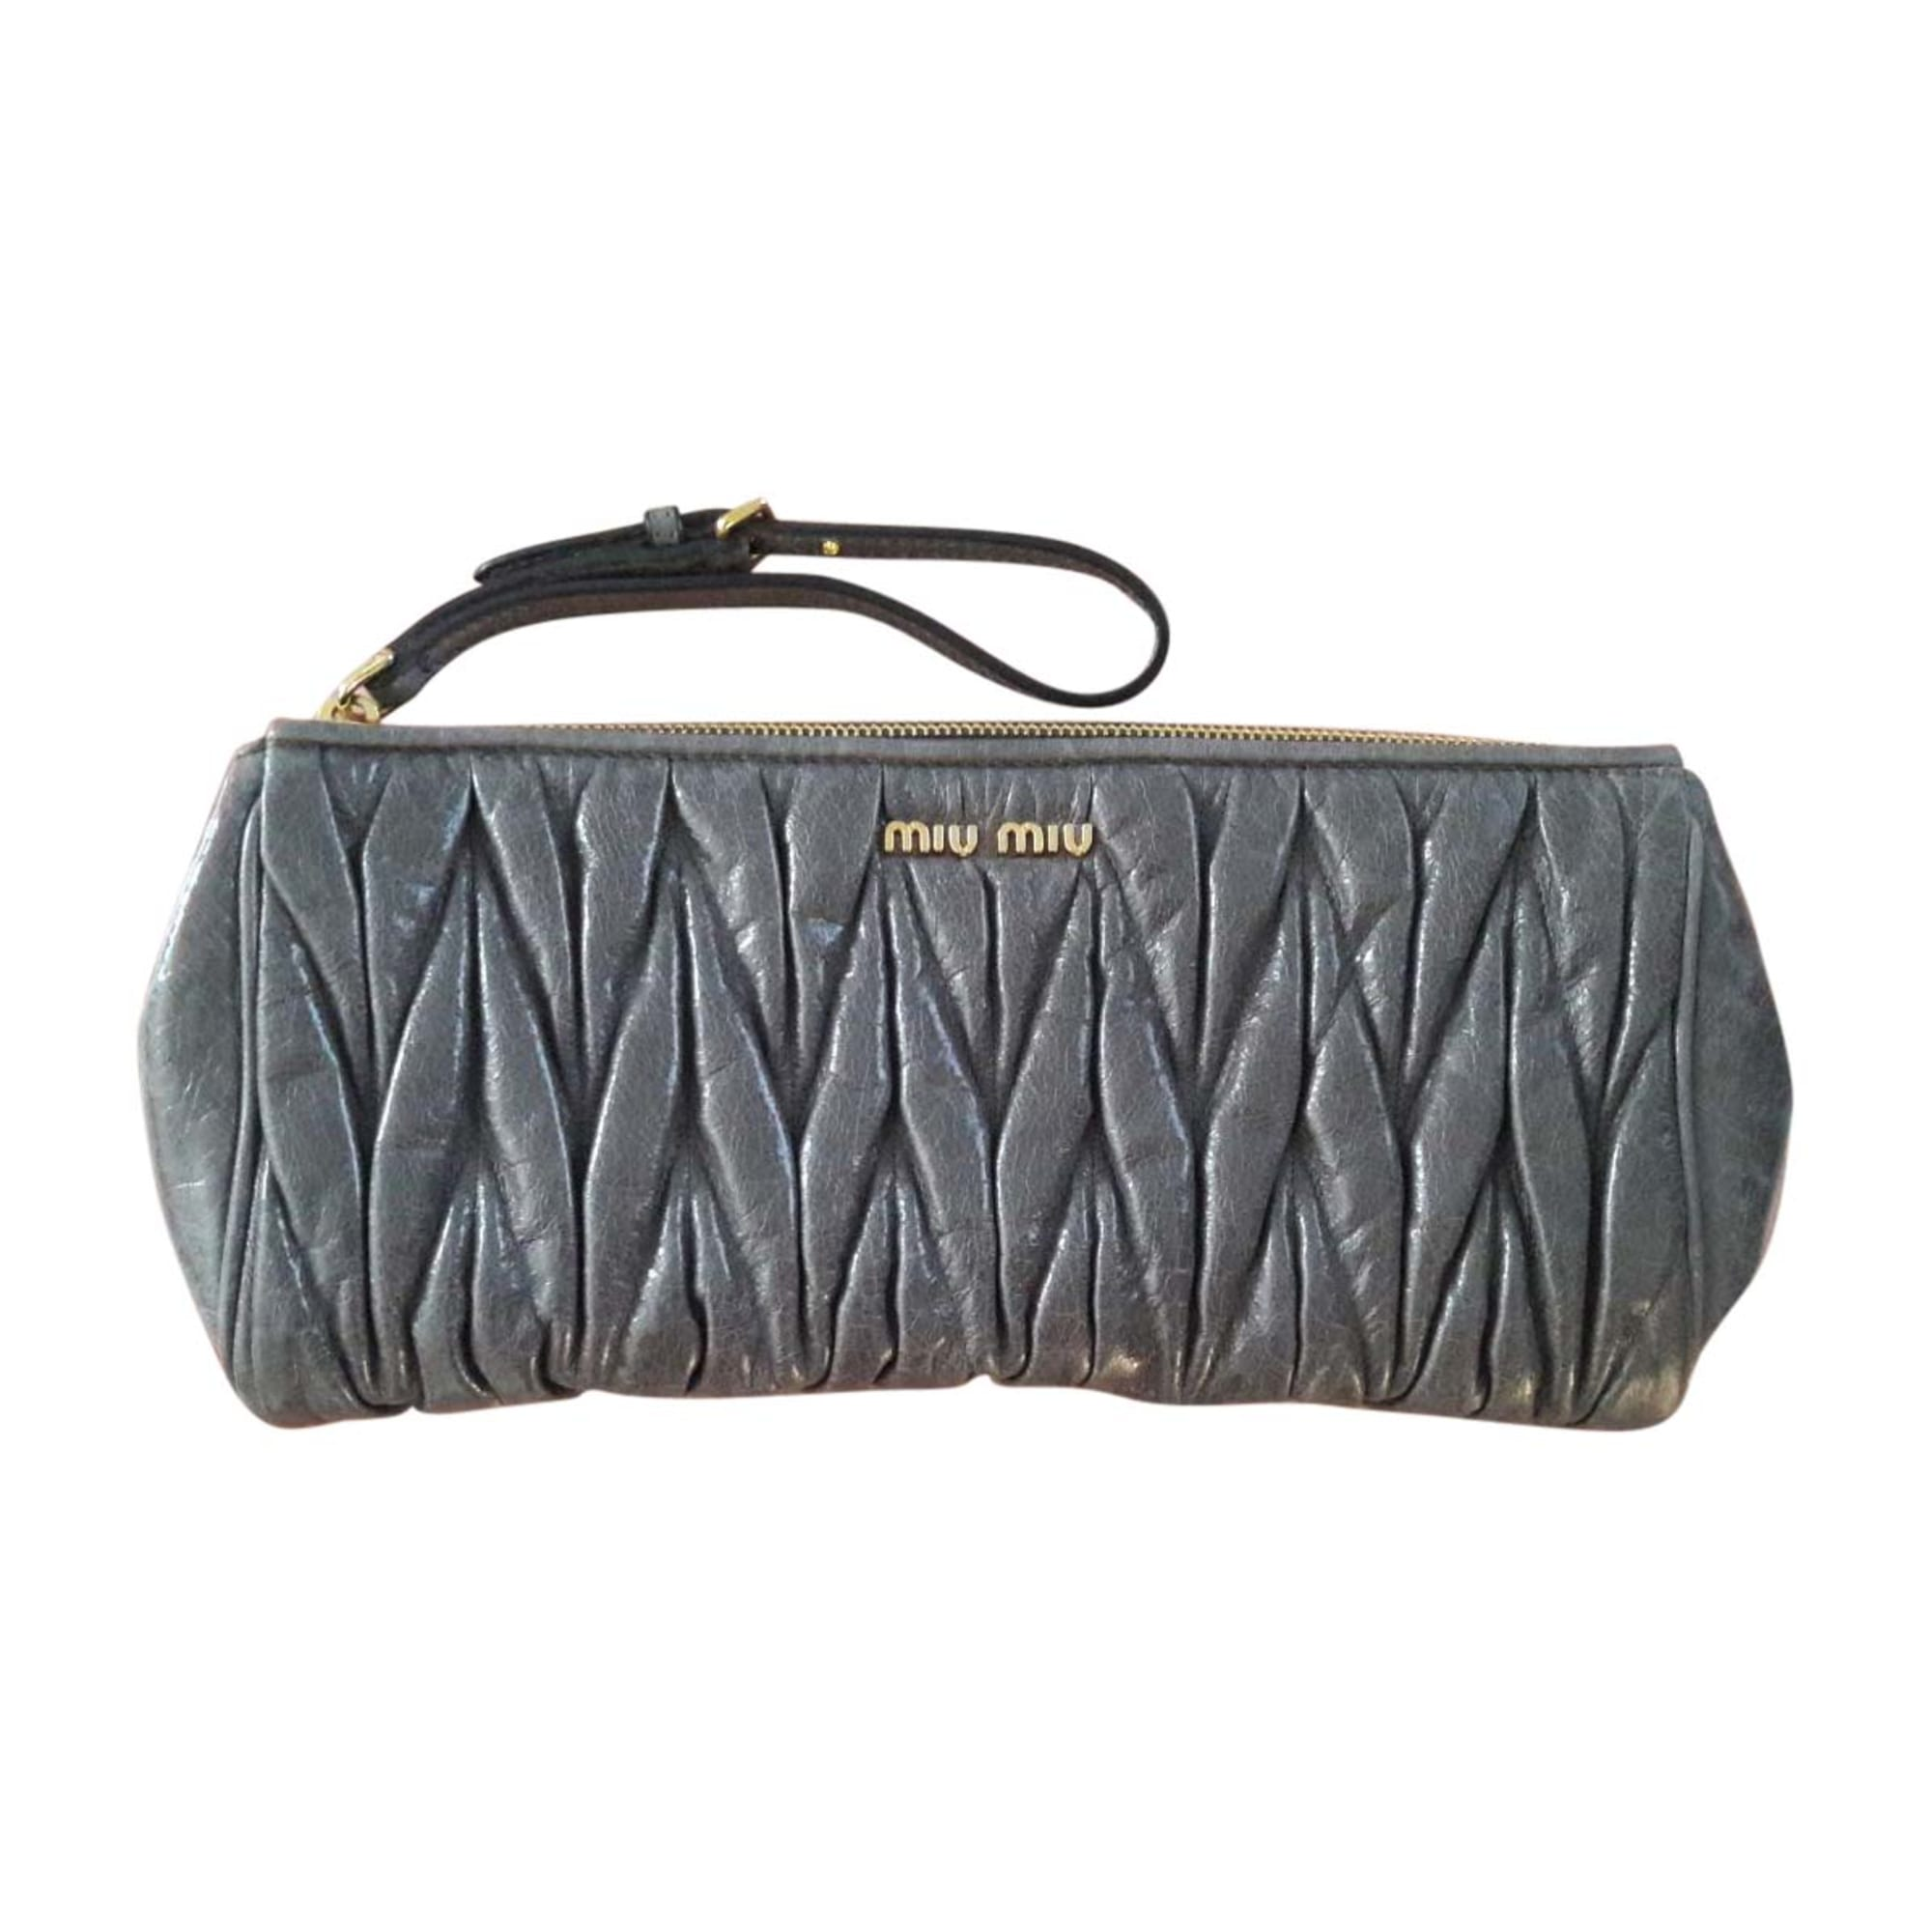 Leather Clutch MIU MIU Gray, charcoal